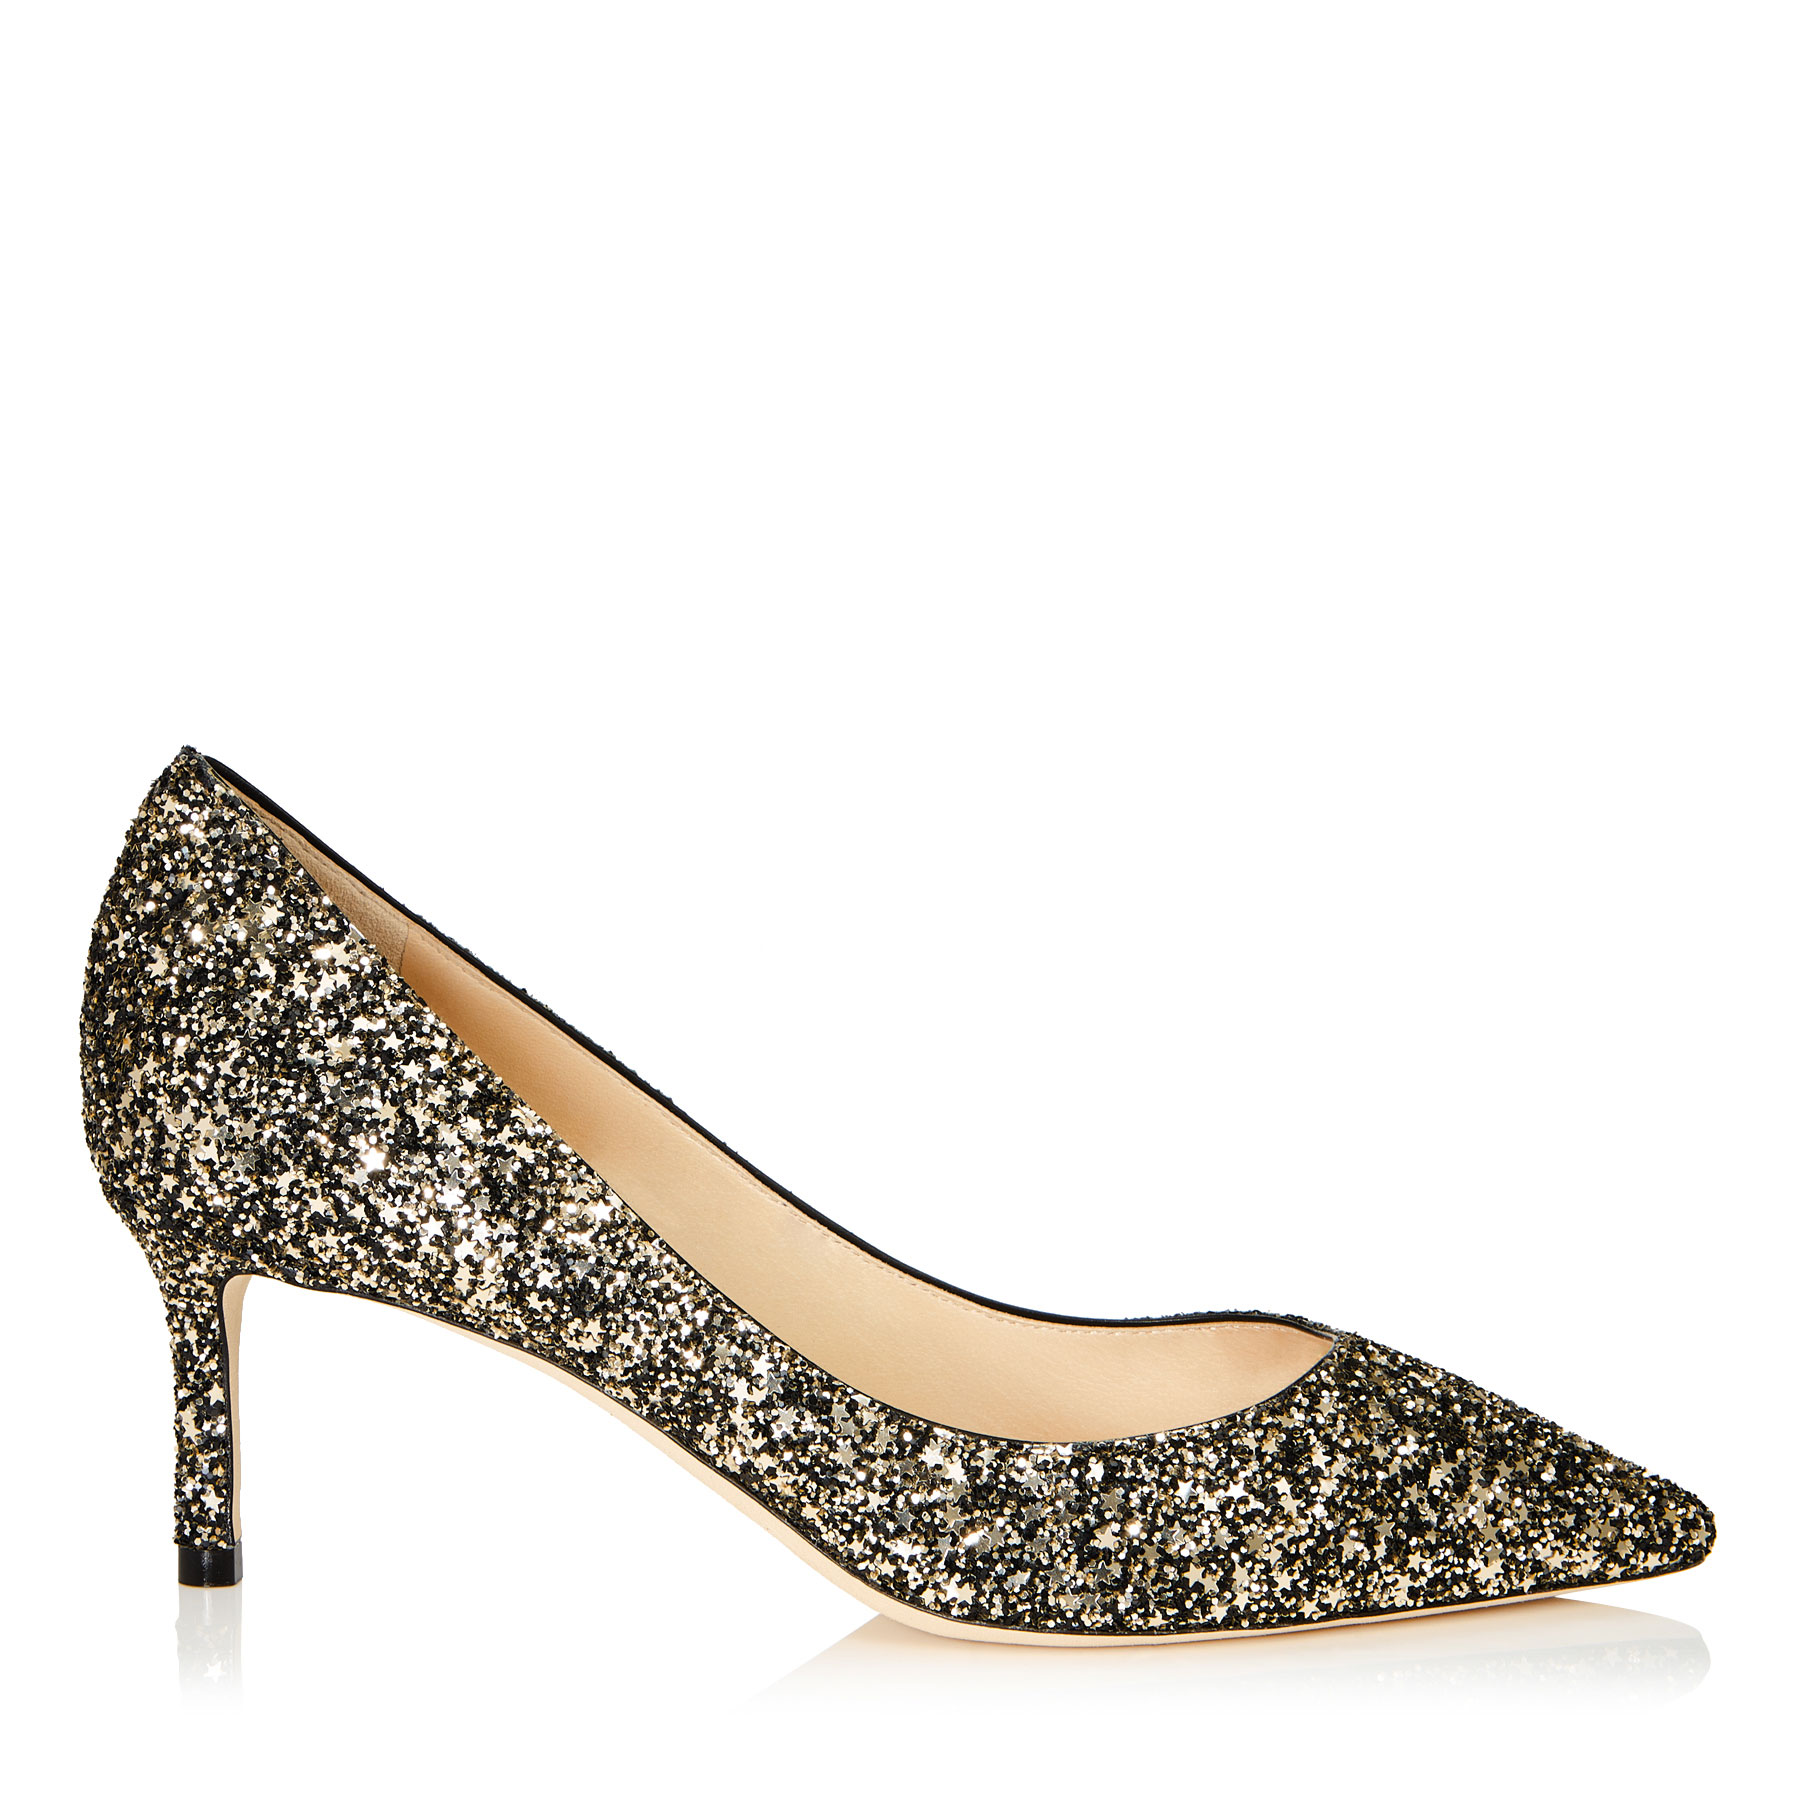 ROMY 60 Gold Mix Star Coarse Glitter Fabric Pointy Toe Pumps